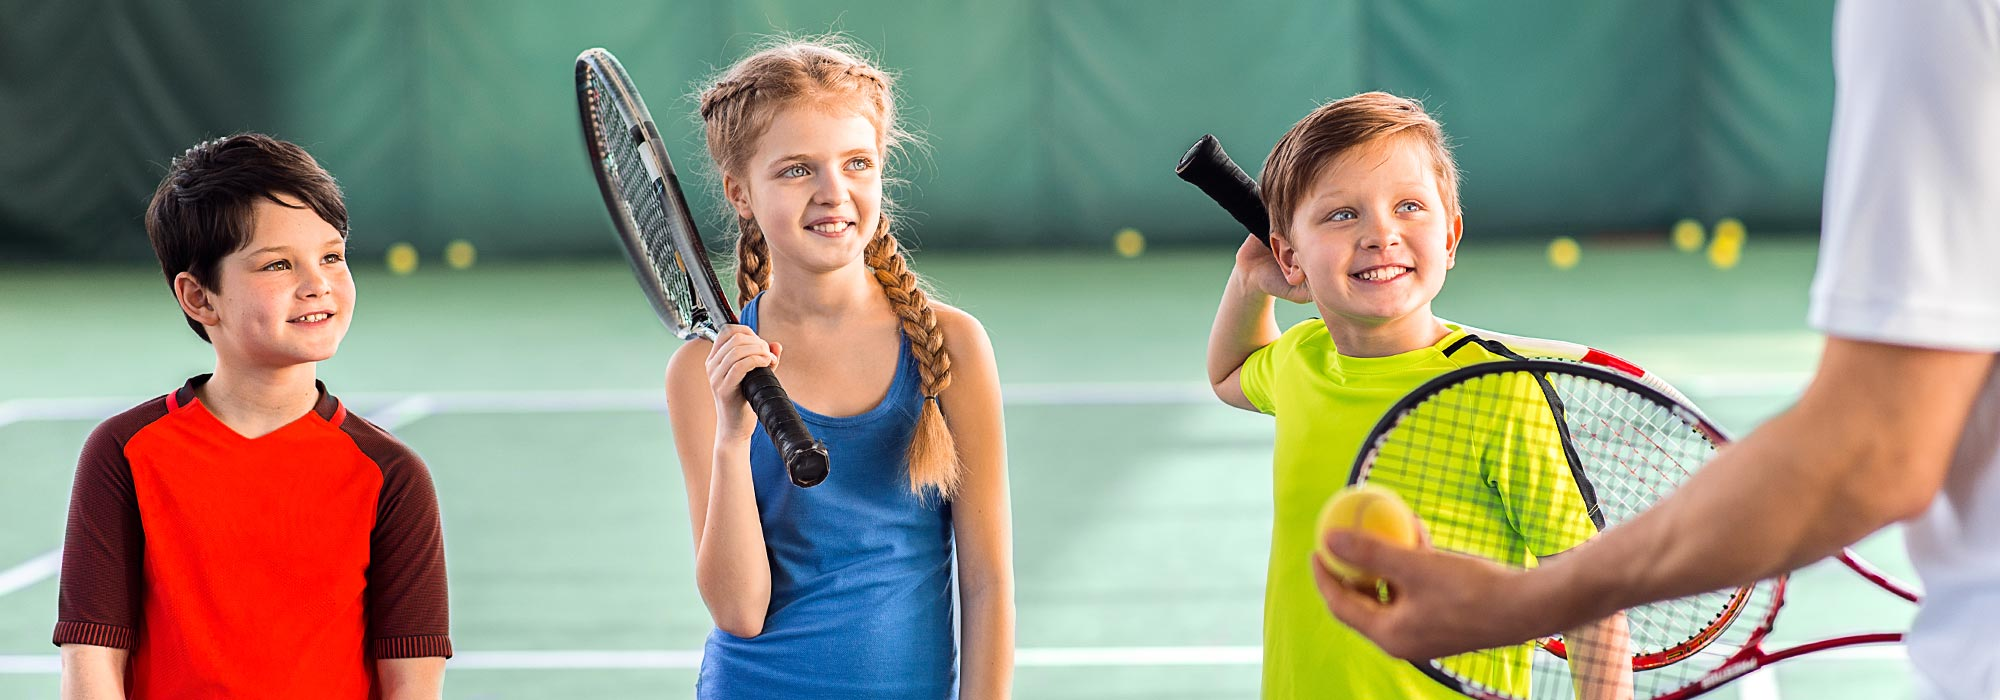 Youth Tennis Lesson